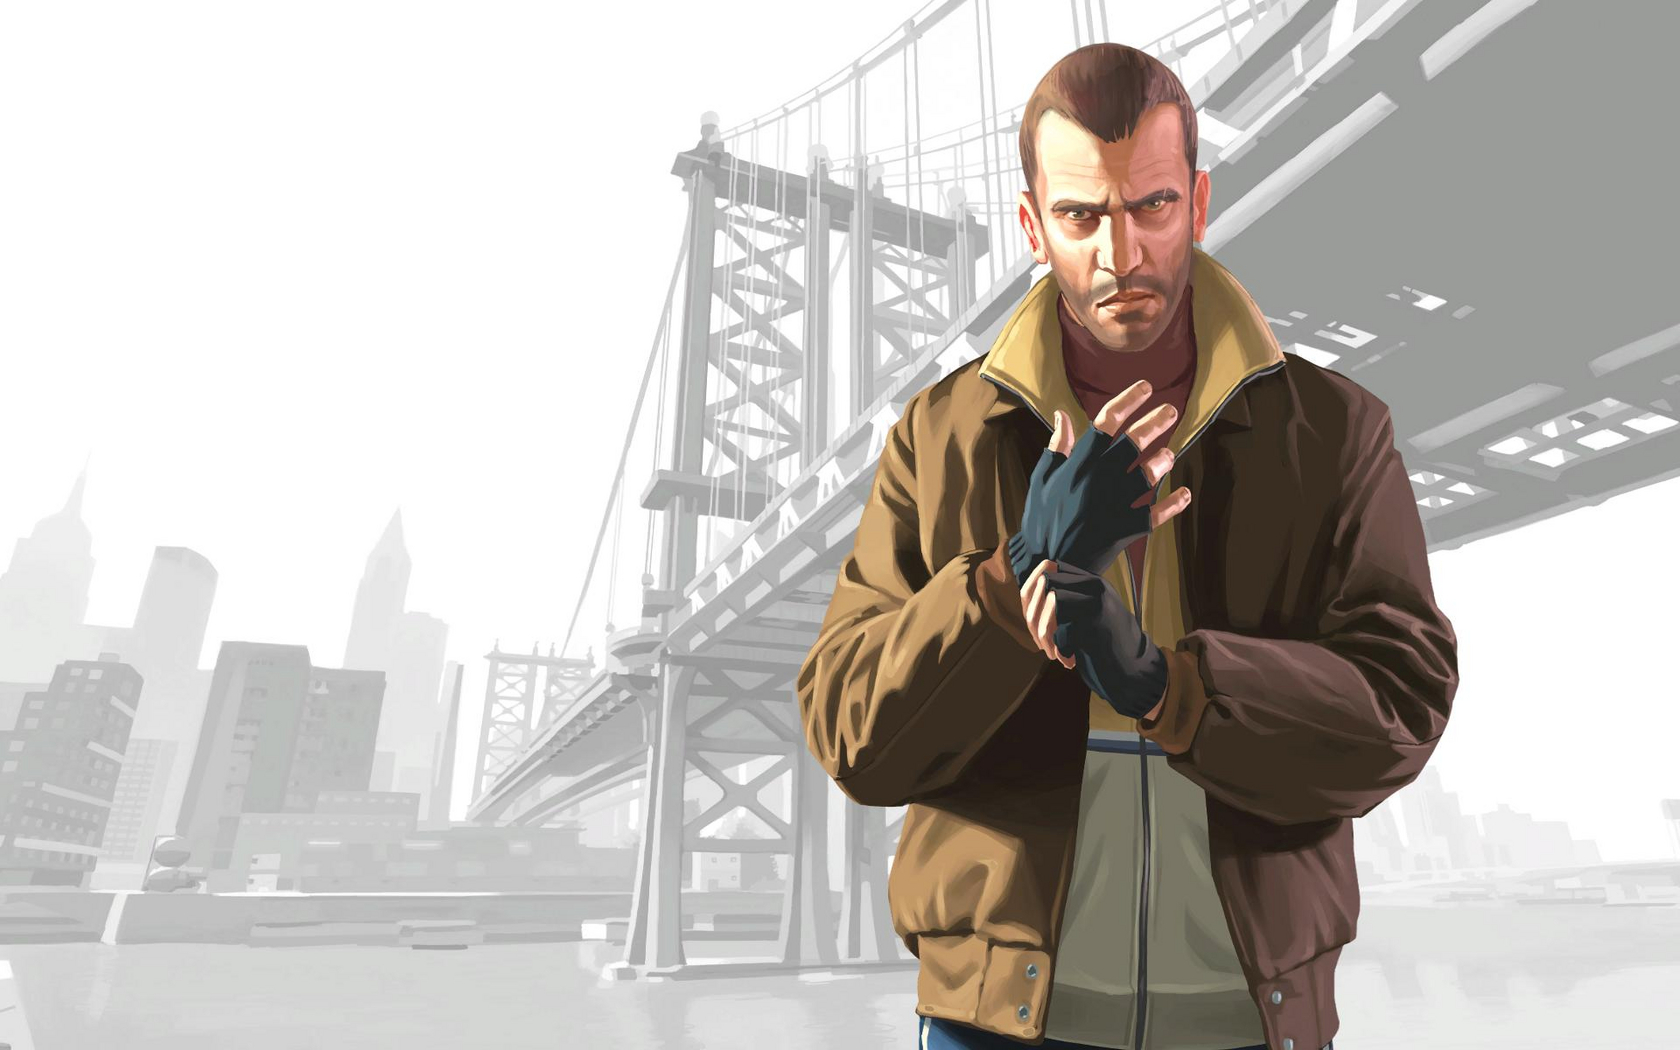 Gta iv porn loading screen fucked sport queen